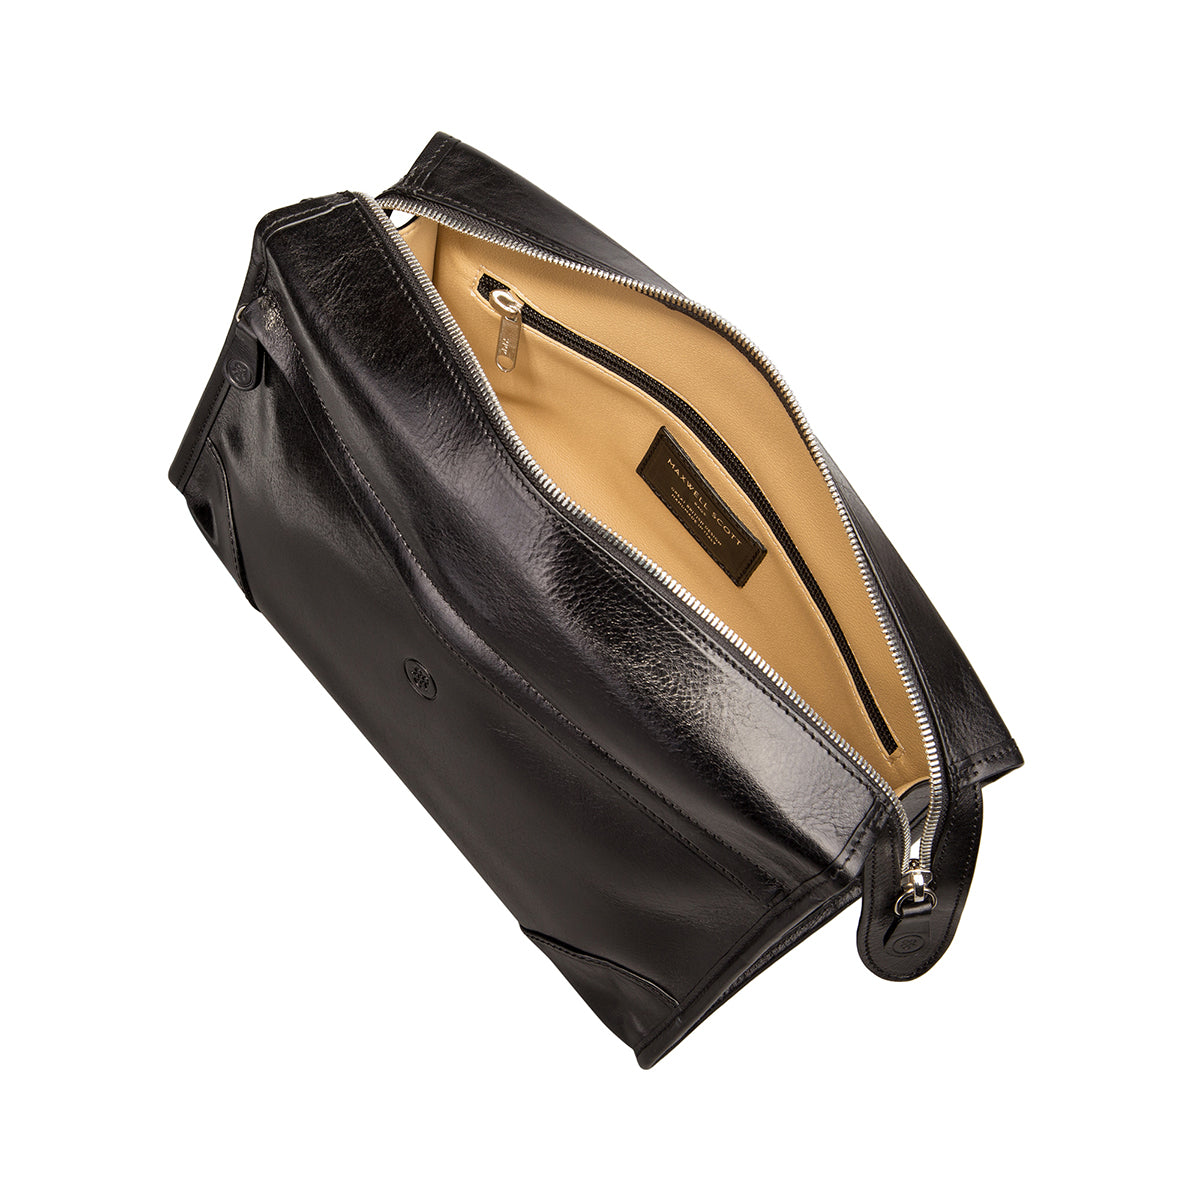 Image 5 of the 'Tanta' Black Veg-Tanned Leather Wash Bag